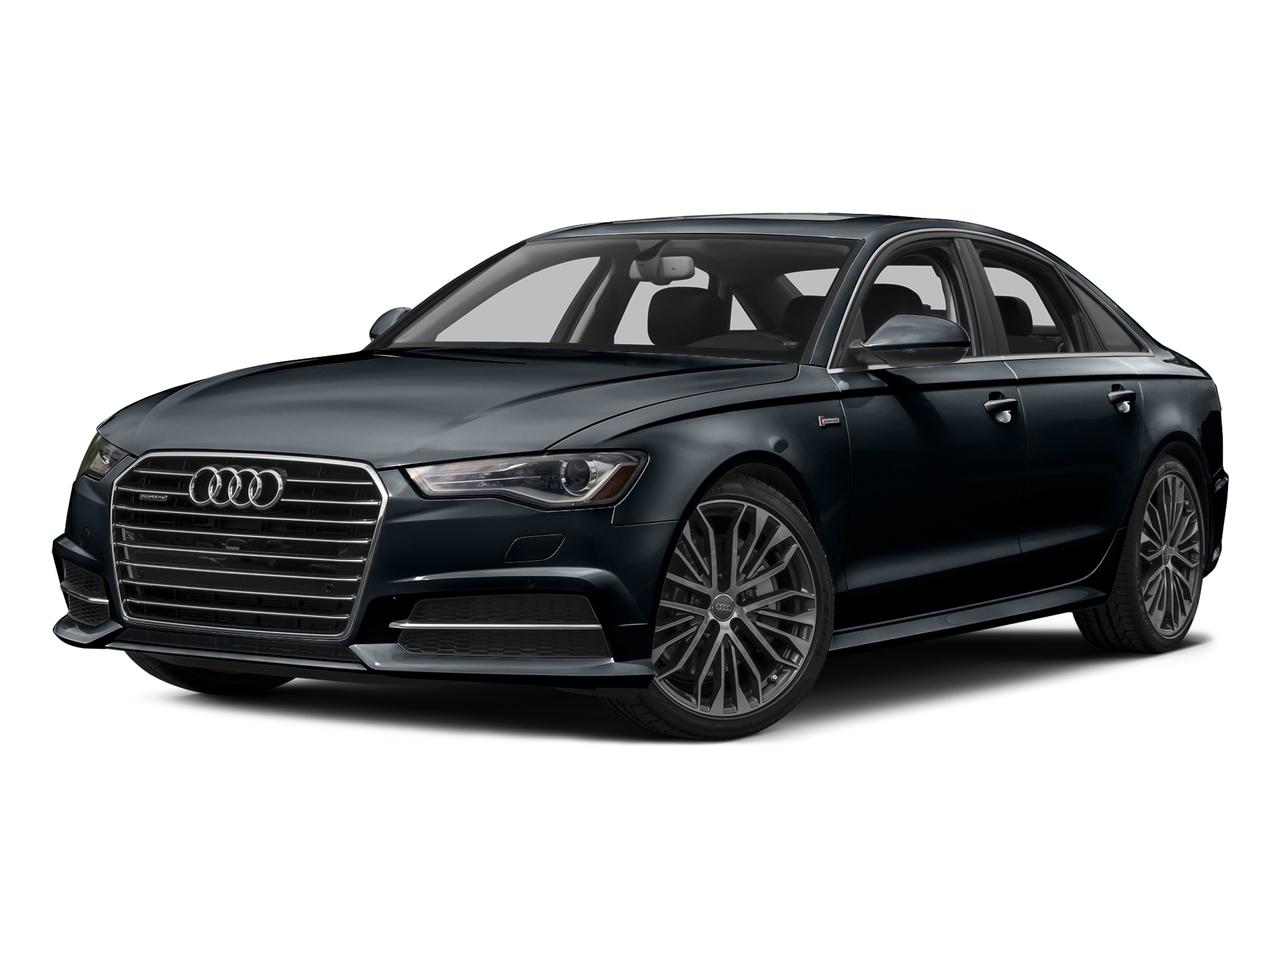 2017 Audi A6 Vehicle Photo in Neenah, WI 54956